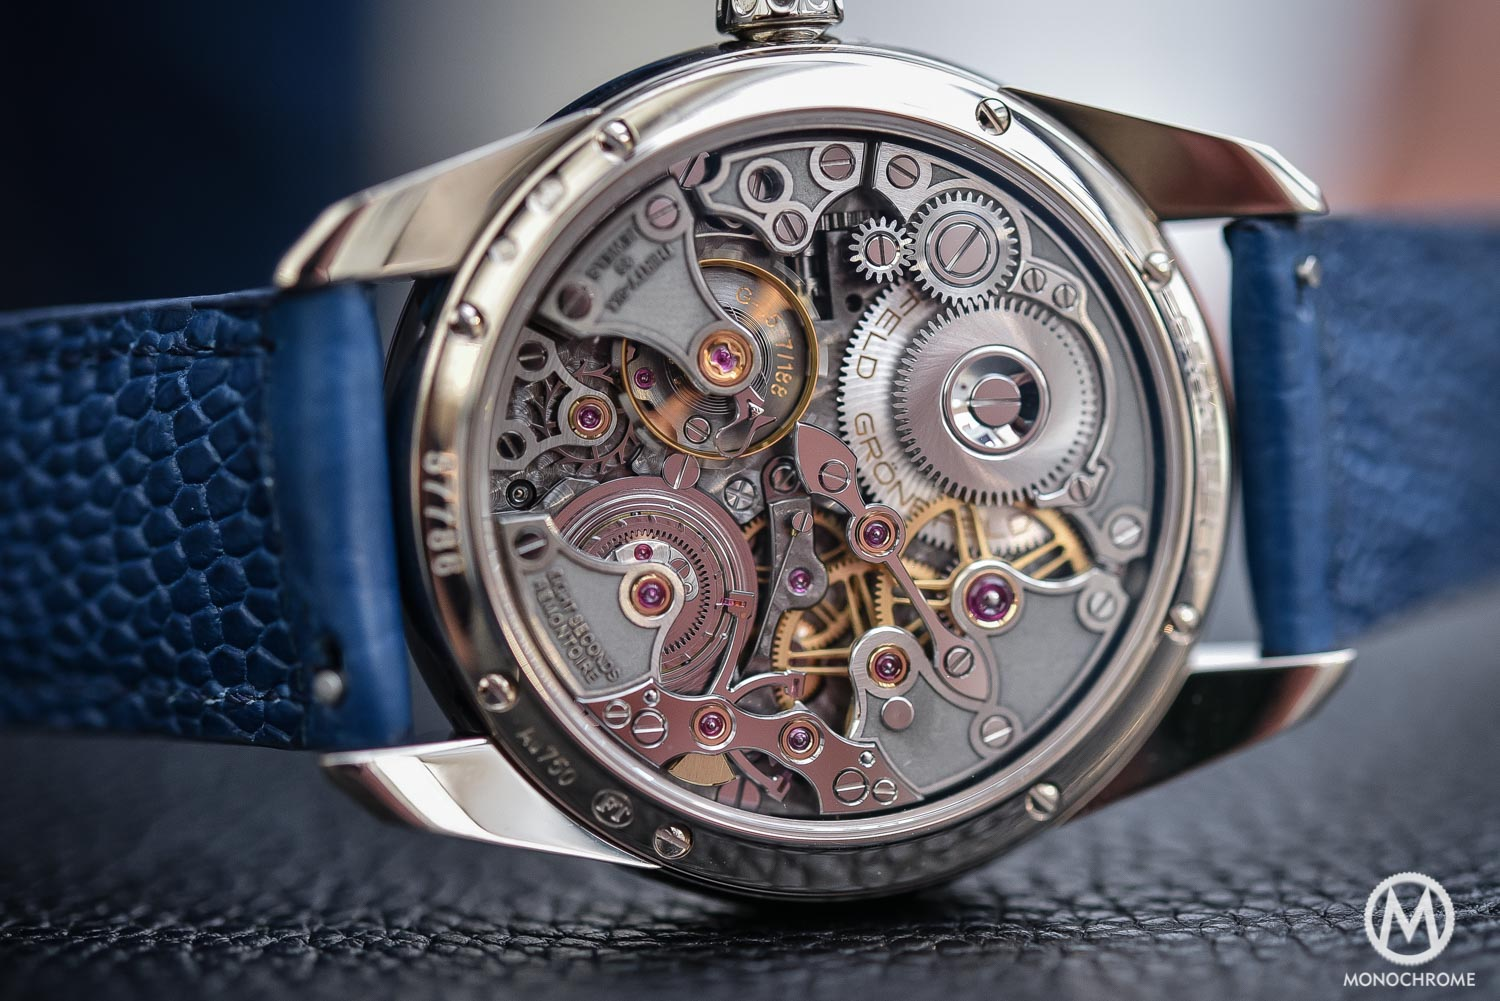 Top 5 Watches from Baselworld 2016 - Gronefeld 1941 Remontoire - Top 5 From Baselworld 2016 Frank - 2